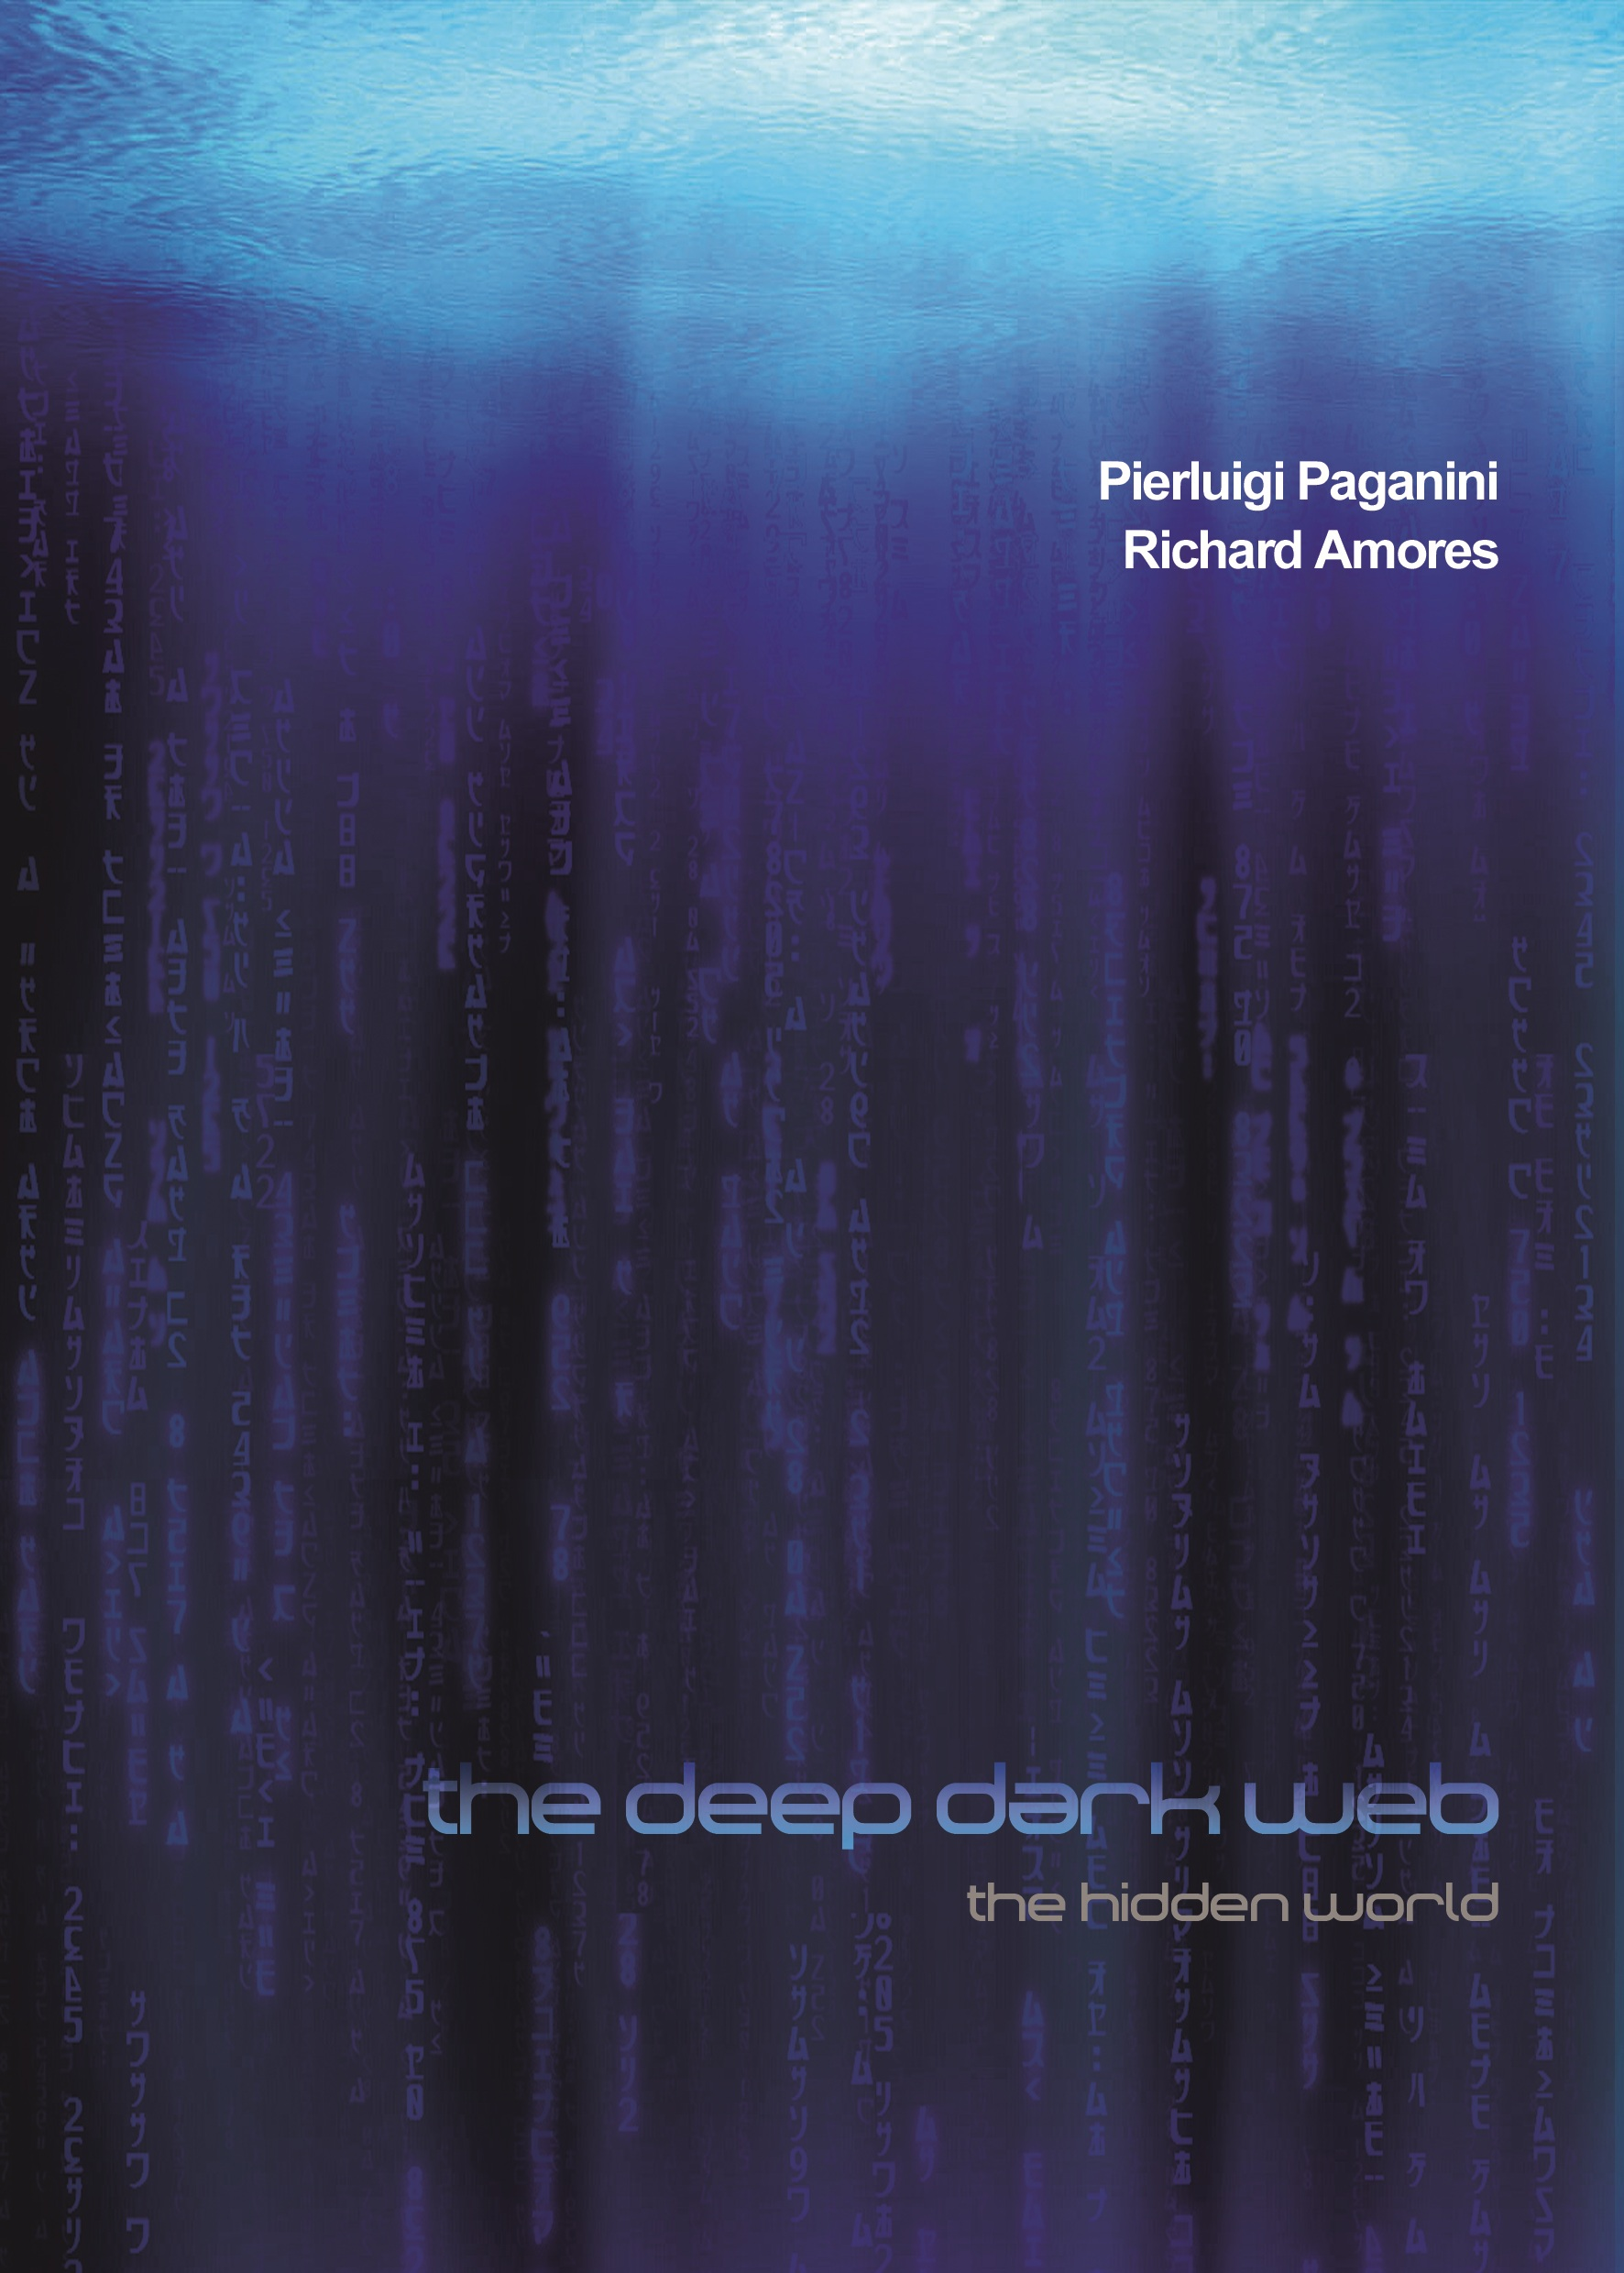 The Deep Dark Web Book Released - Security Affairs | Security Affairs